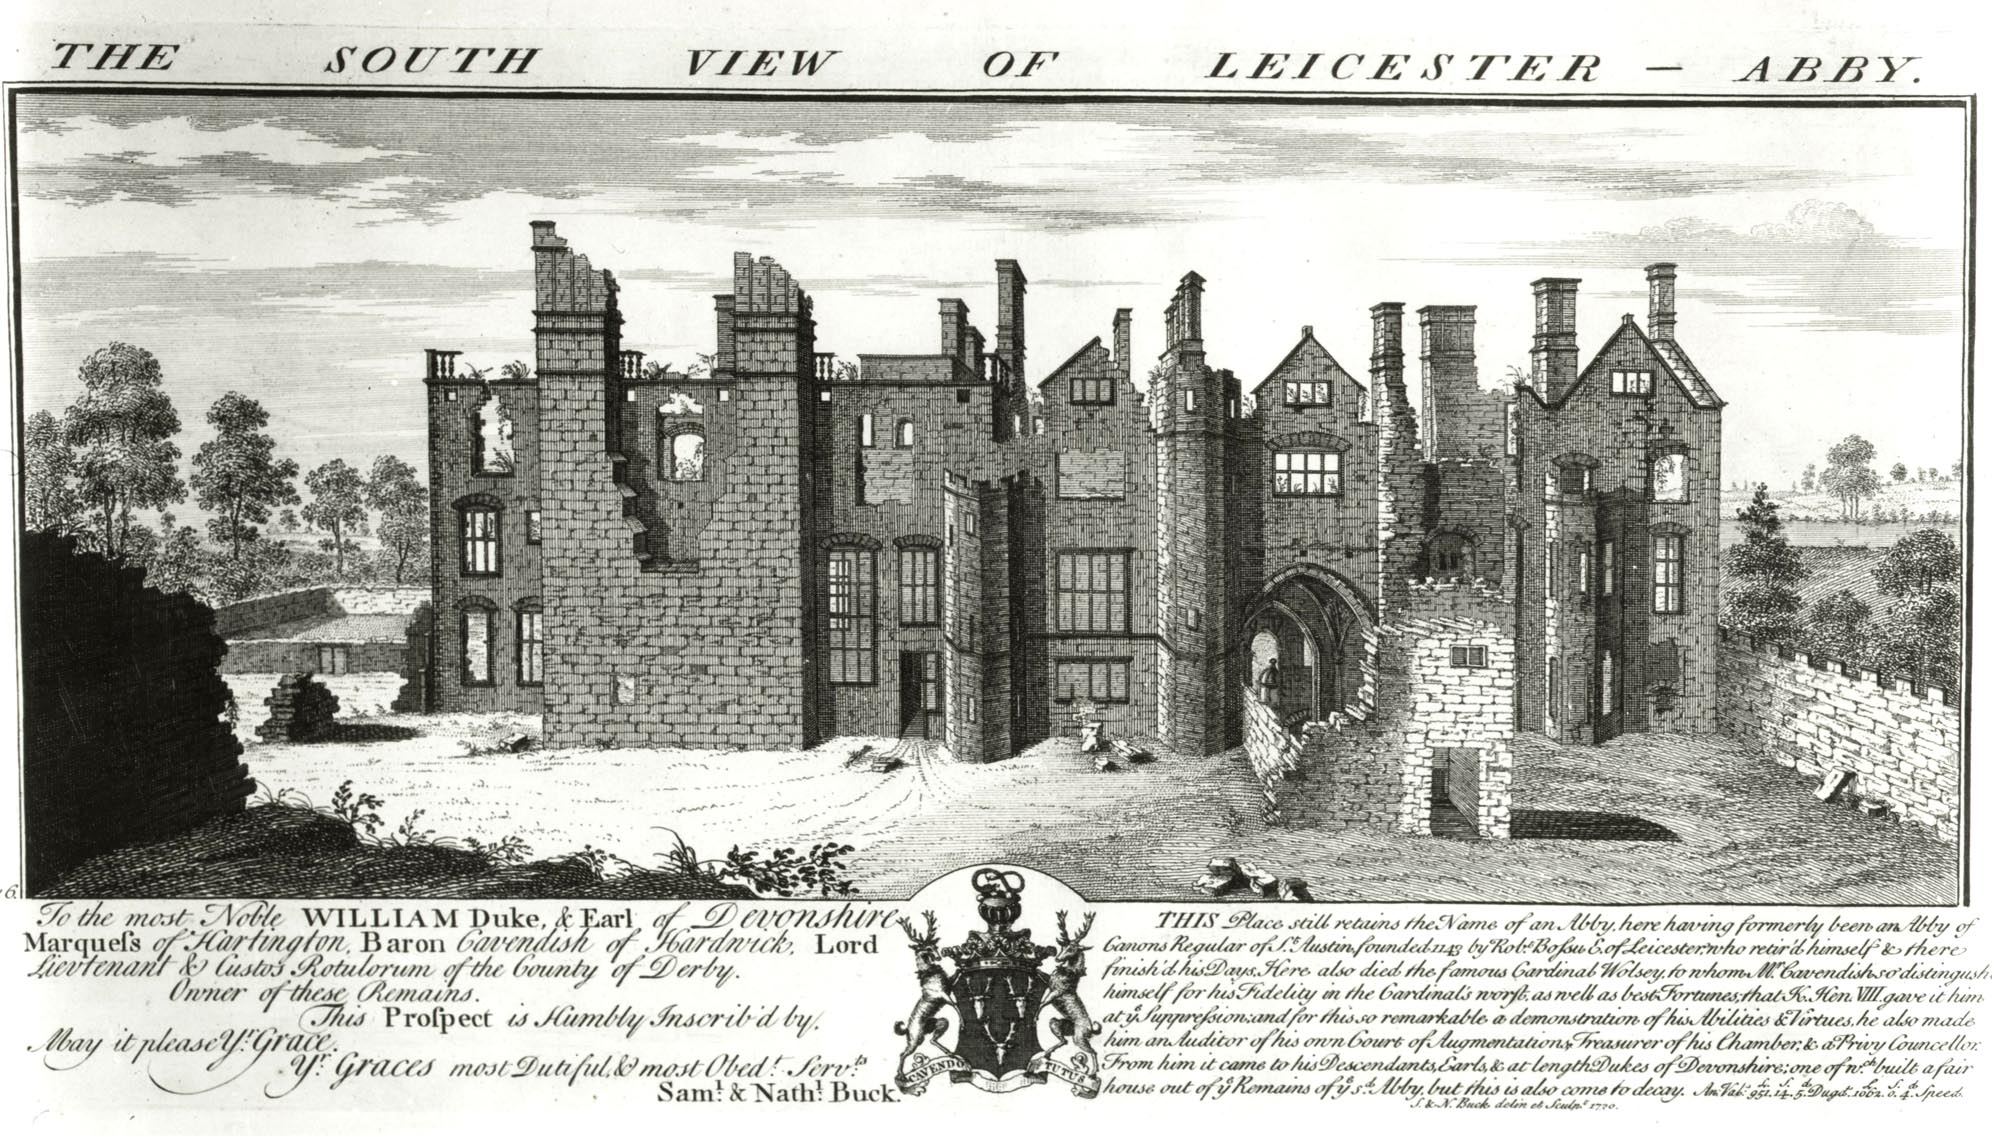 'The south view of Leicester Abby' by Samuel and Nathaniel Buck, 1730 -